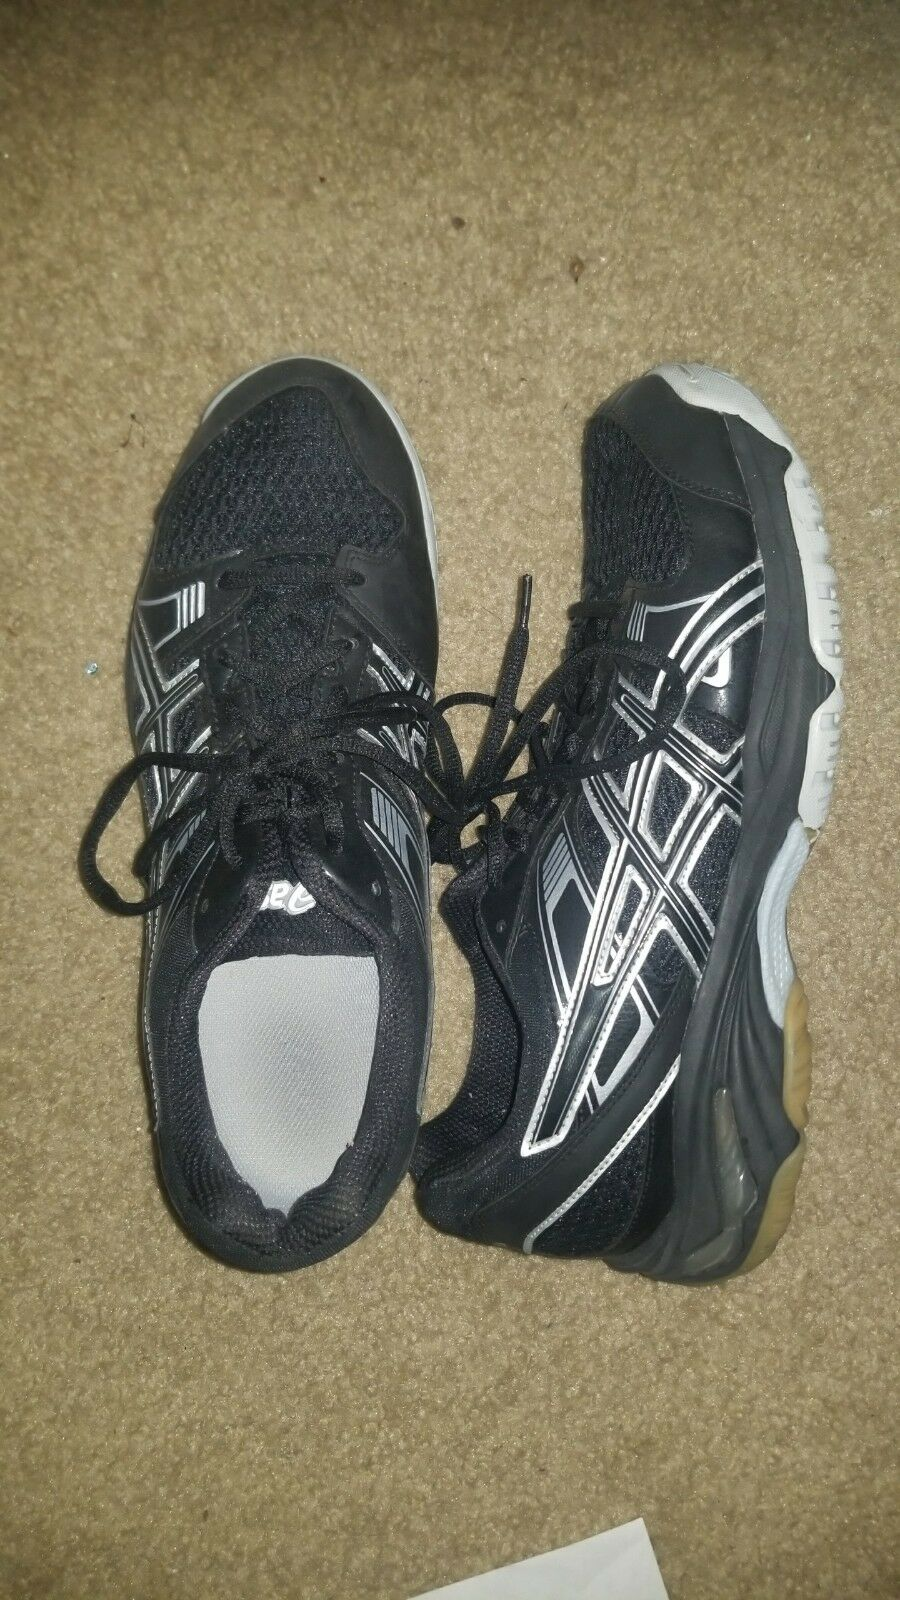 asics gel-1140v volleyball shoes size 11 Cheap women's shoes women's shoes